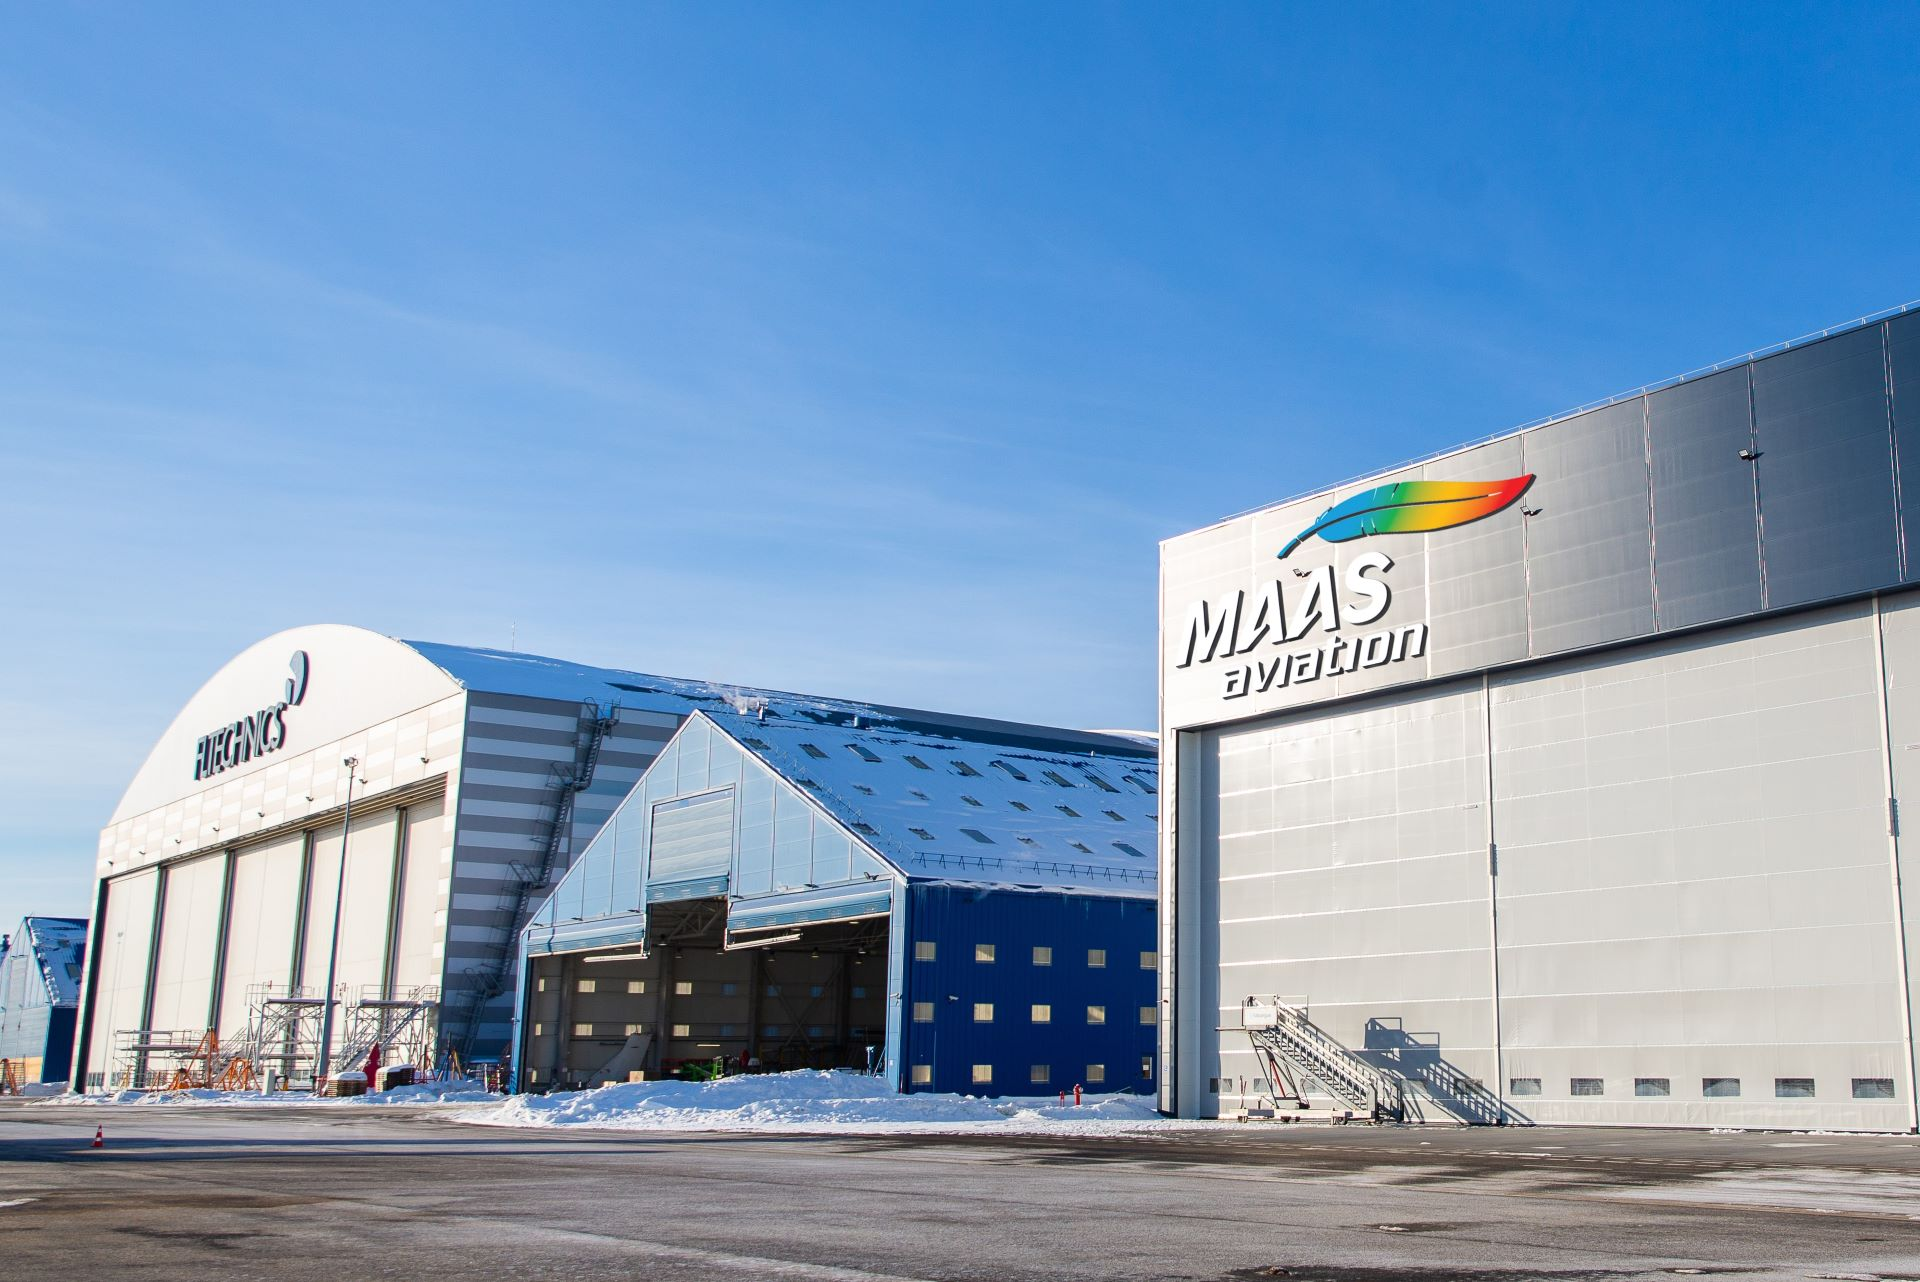 MAAS Aviation partners with FL Technics to create world class re-delivery centre in Kaunas, Lithuania